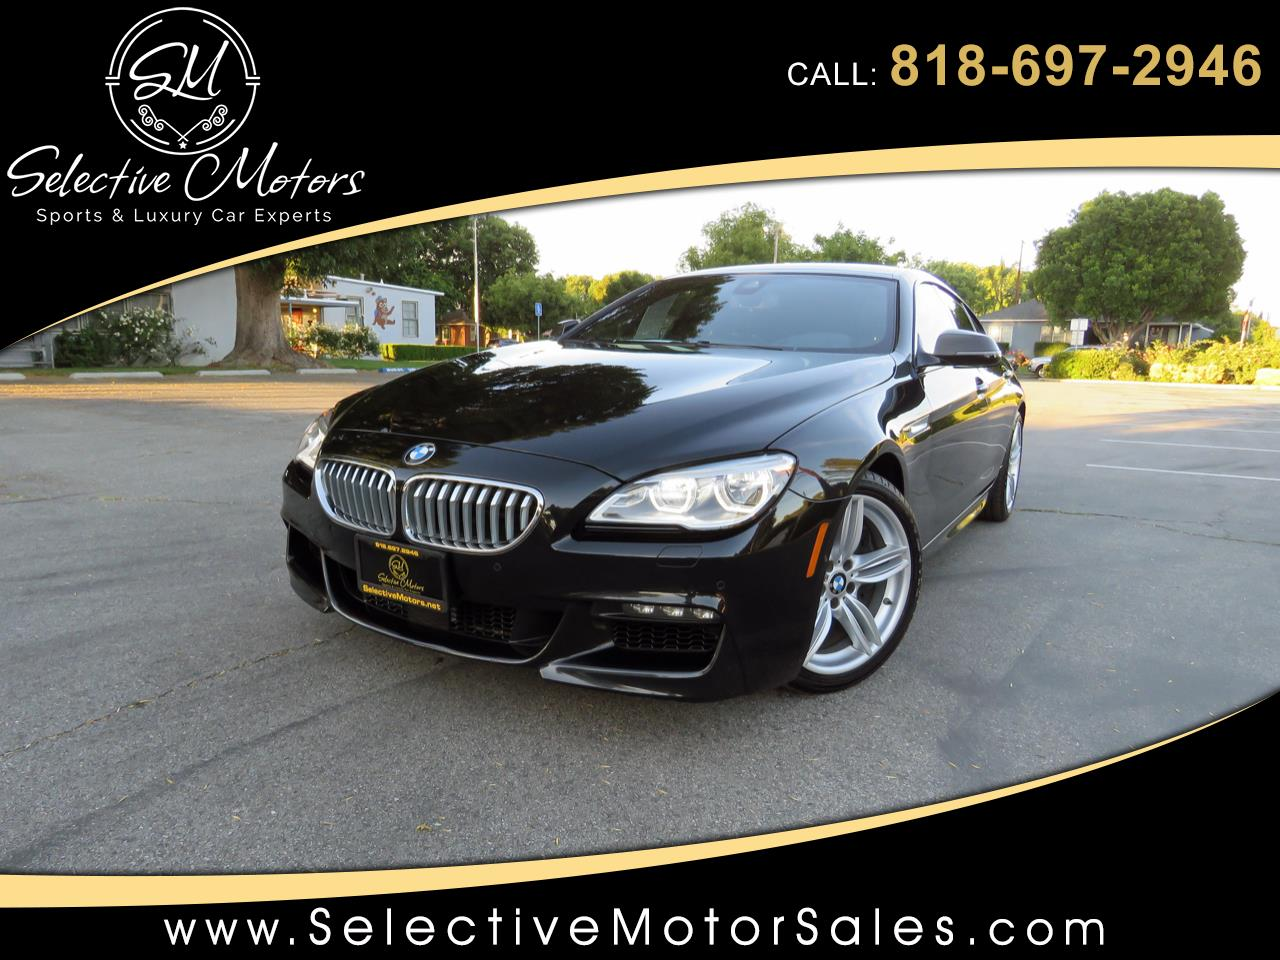 2016 BMW 6-Series Gran Coupe 650i xDrive M-Sport